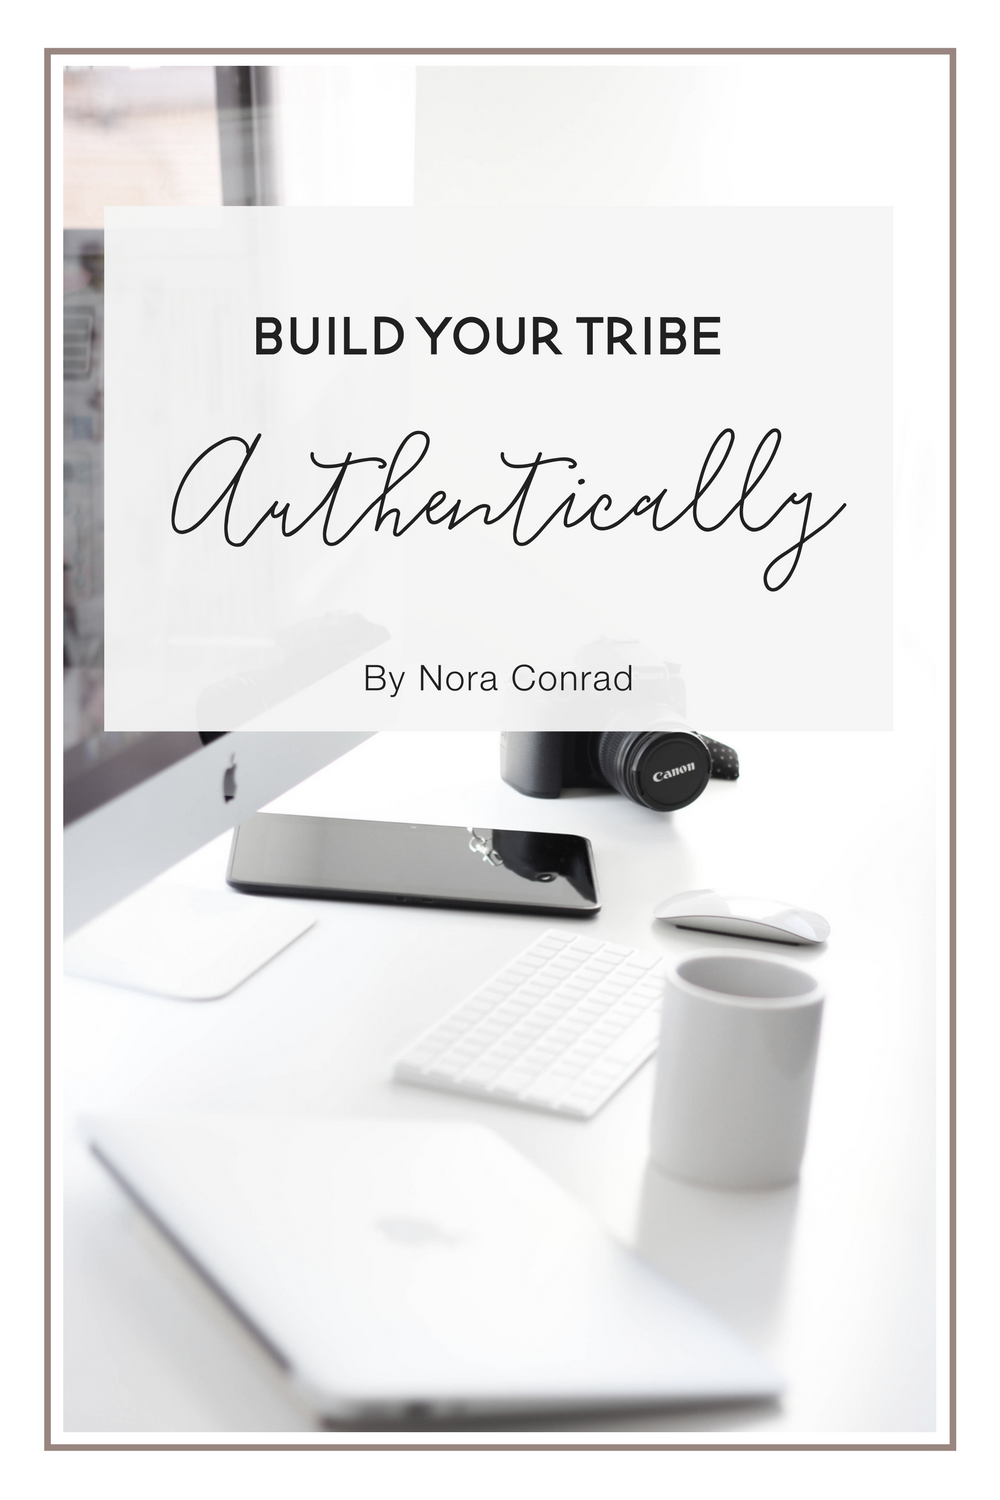 Build Your Tribe, Authentically